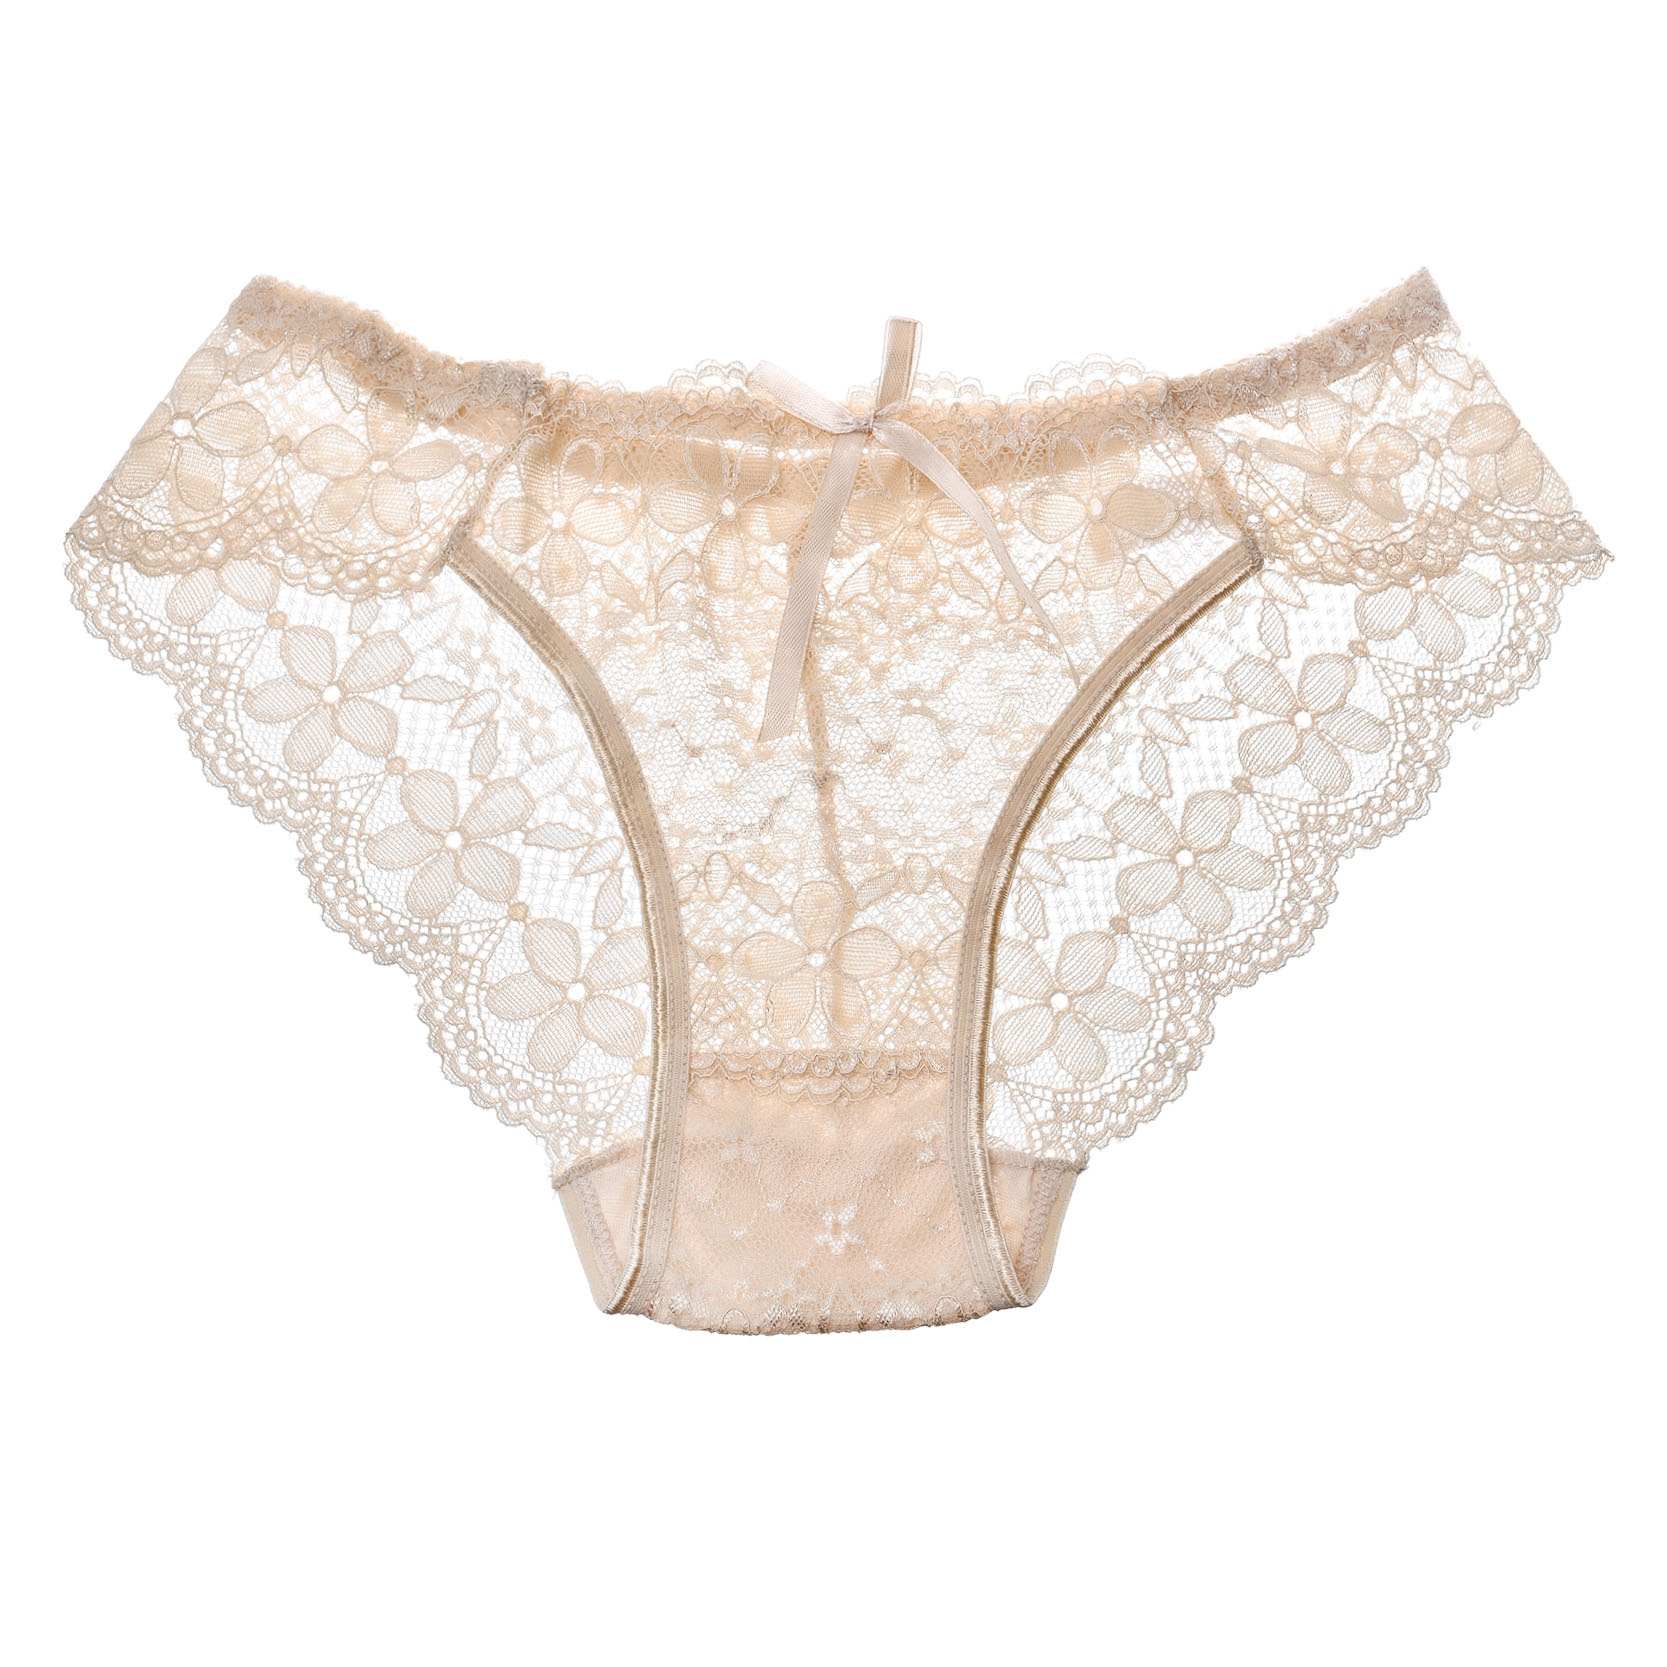 3 Pcs Hot Sale Sexy Lace Seamless Panties Underwear Women Breathable Pantie Hollow Transparent Panties 13